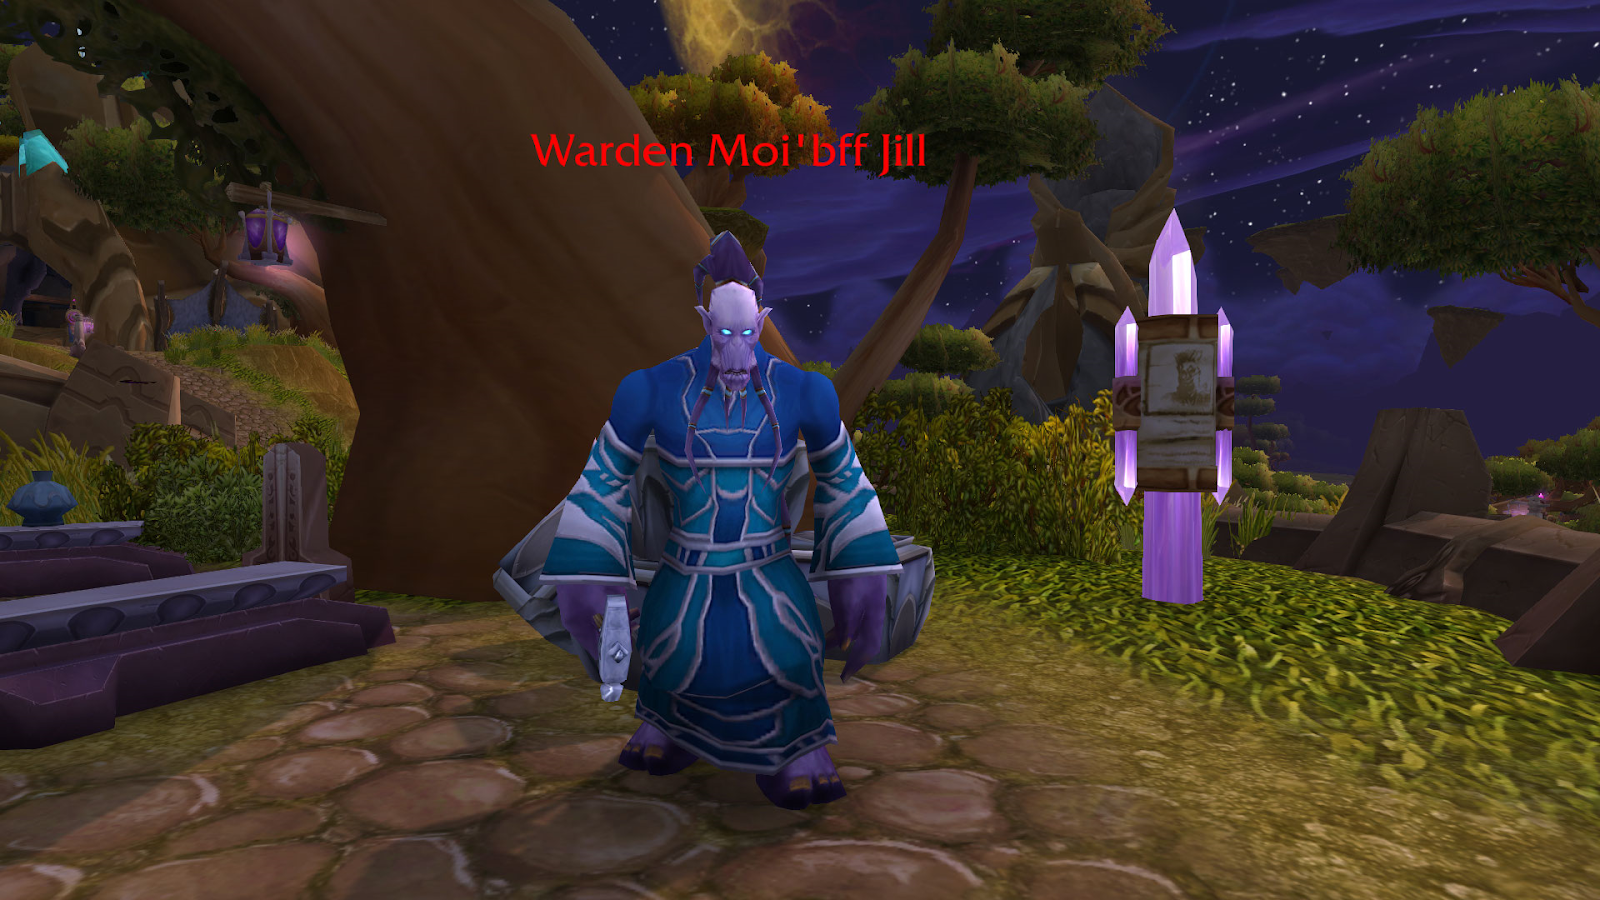 Alliance vendor who sells the White War Talbuk at Exalted